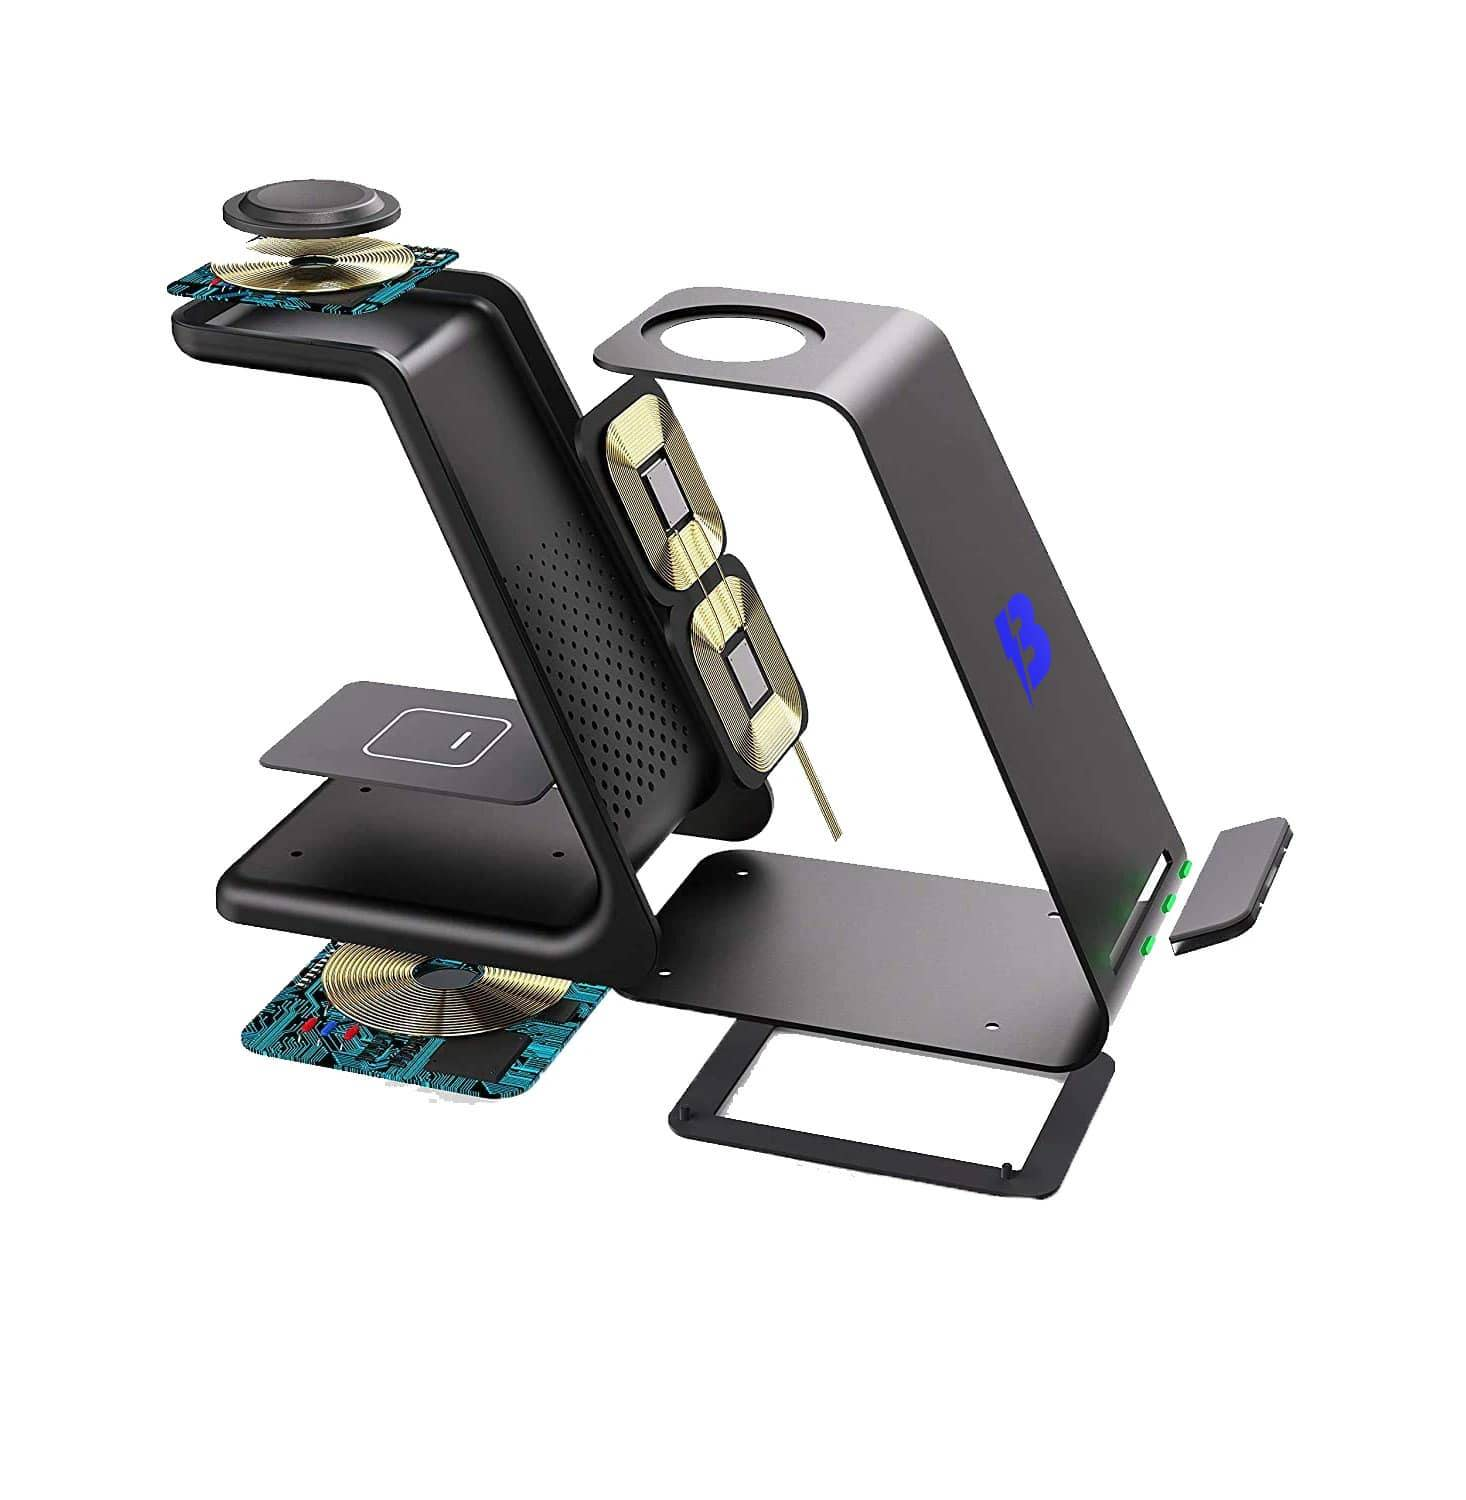 3 in 1 charging station hardware internal qi charging coils